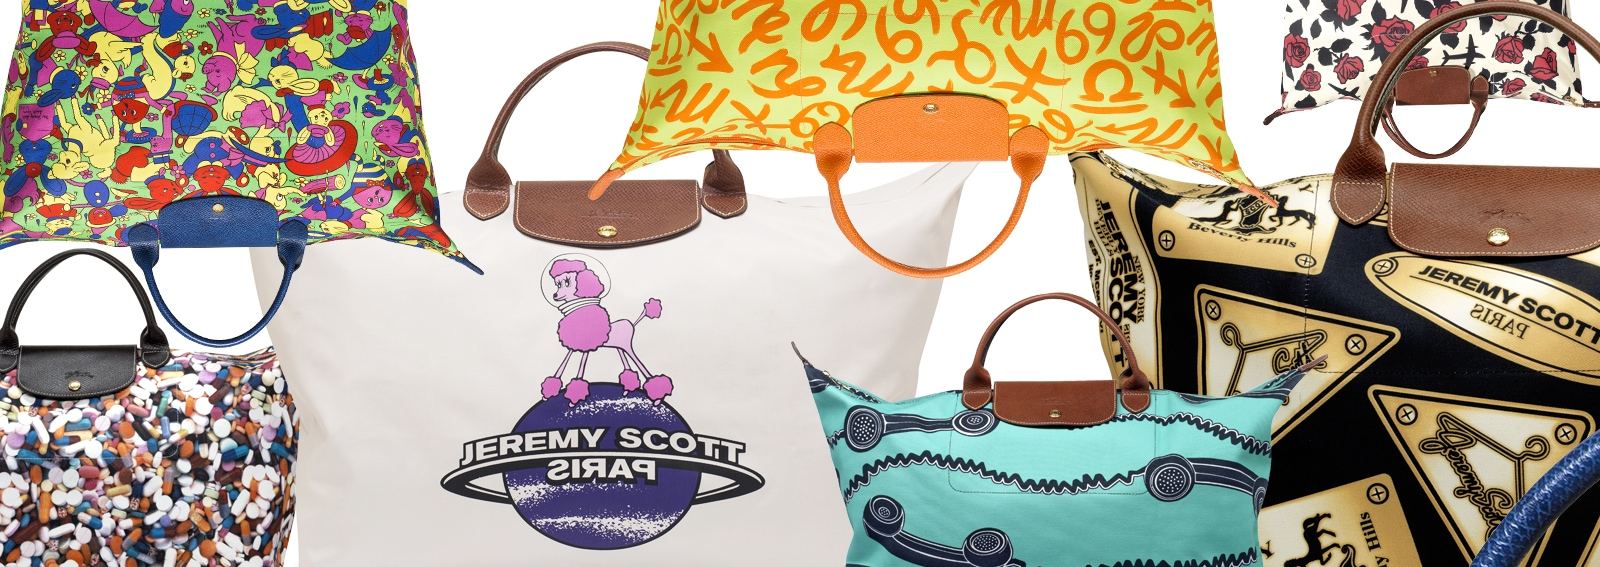 cover-longchamp-jeremy-scott-DESKTOP